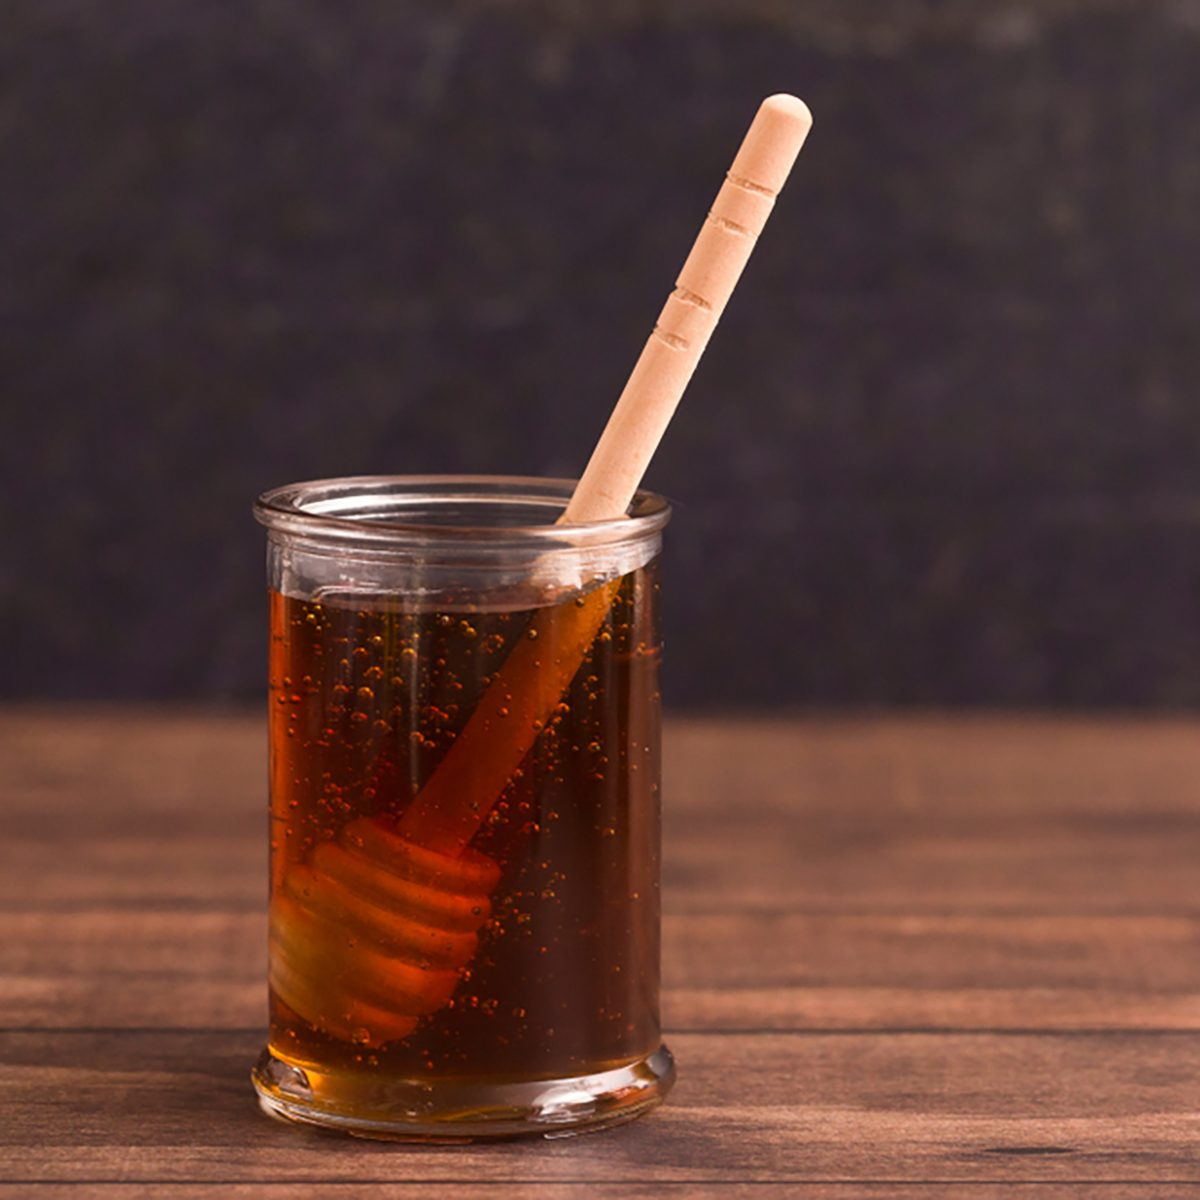 Honey with a Honey Spoon in a Glass Container